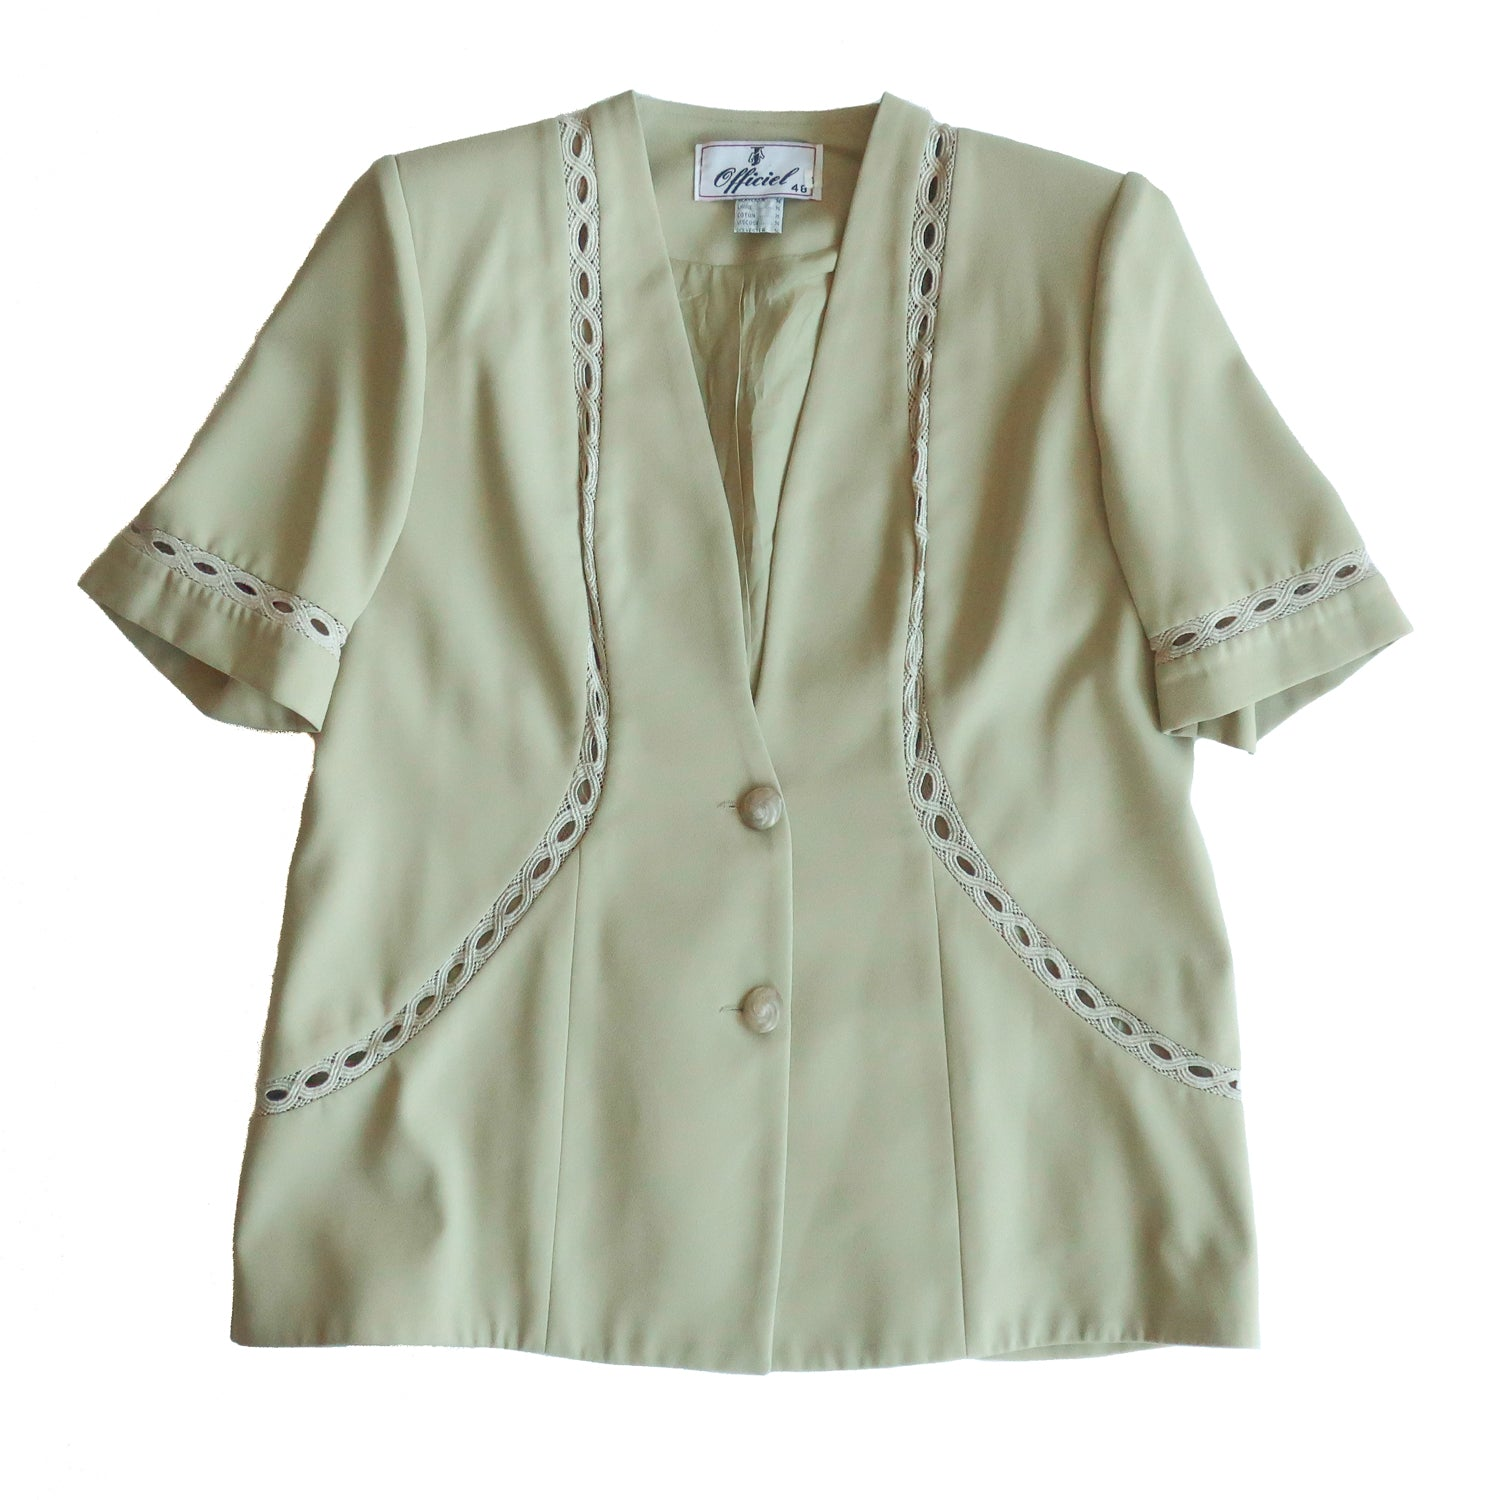 Second Room Vintage Clothing. Vintage light green short sleeve blazer, with lace style inserts/cut outs, two button closure, fully lined, with shoulder pads that could be easily removed. Free North American shipping on all orders.